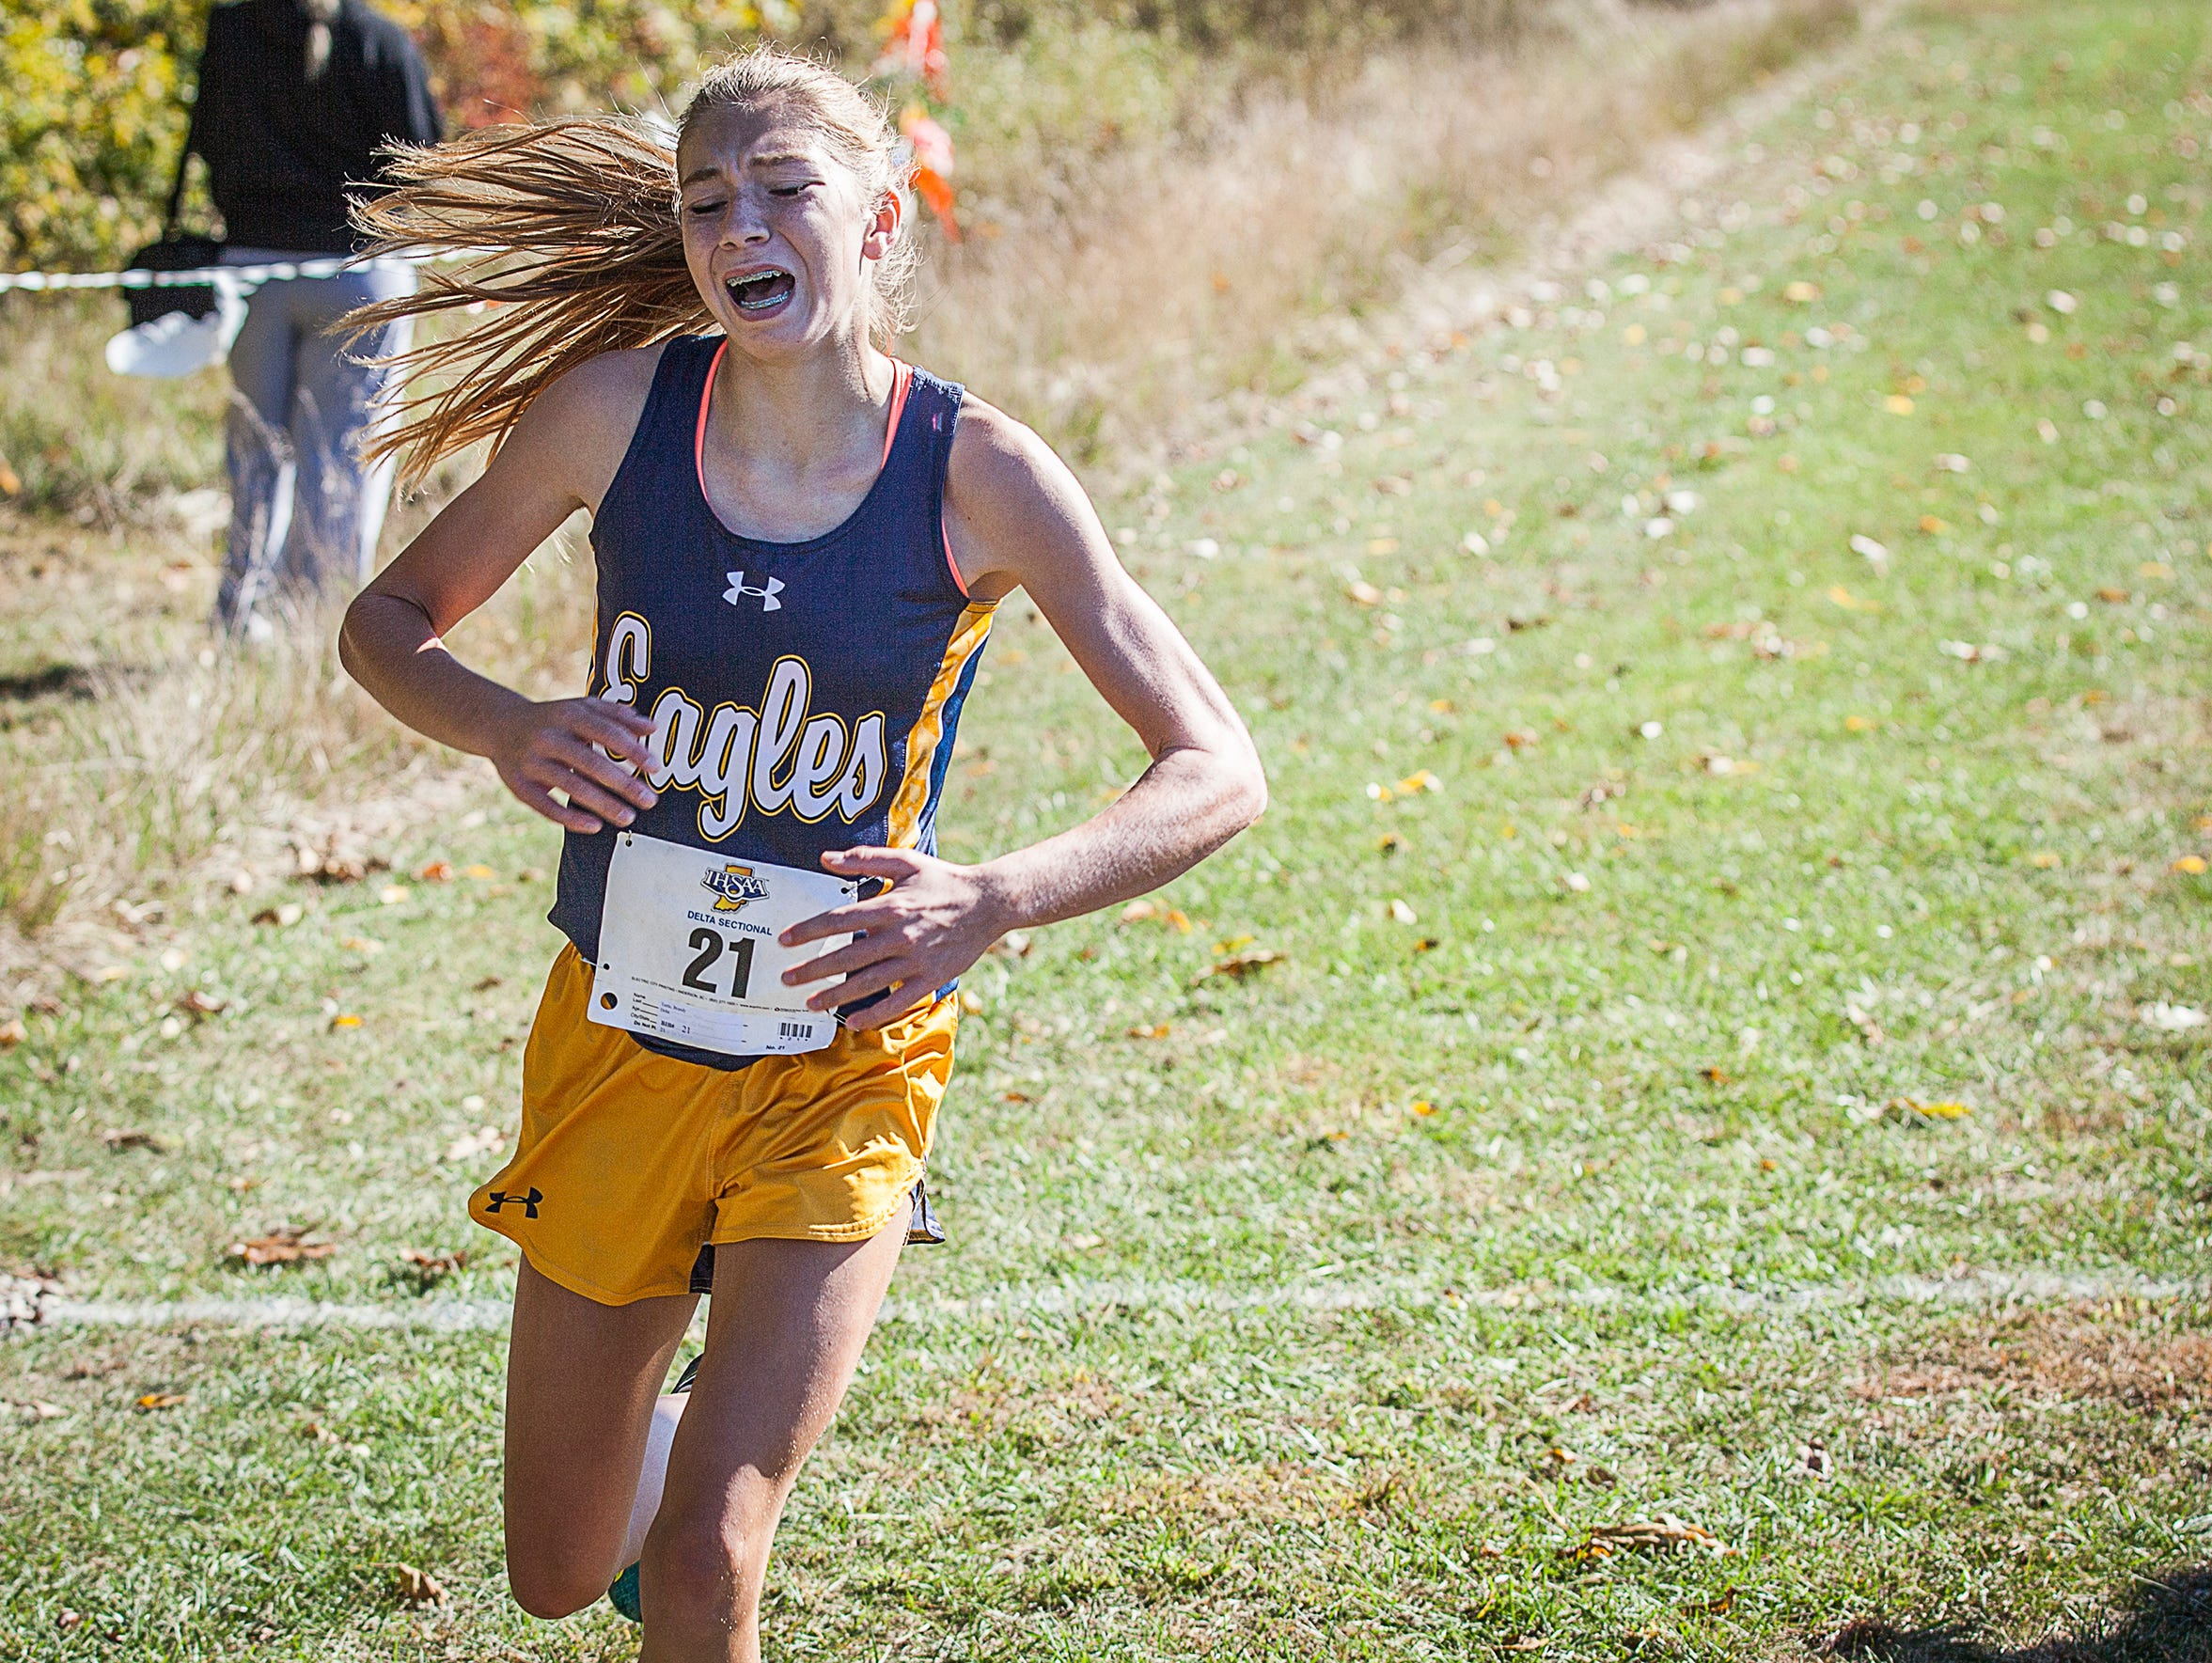 Brandy Tuttle finishes for Delta during the cross country sectional at the Sportsplex in Muncie on Saturday, Oct. 10, 2015.